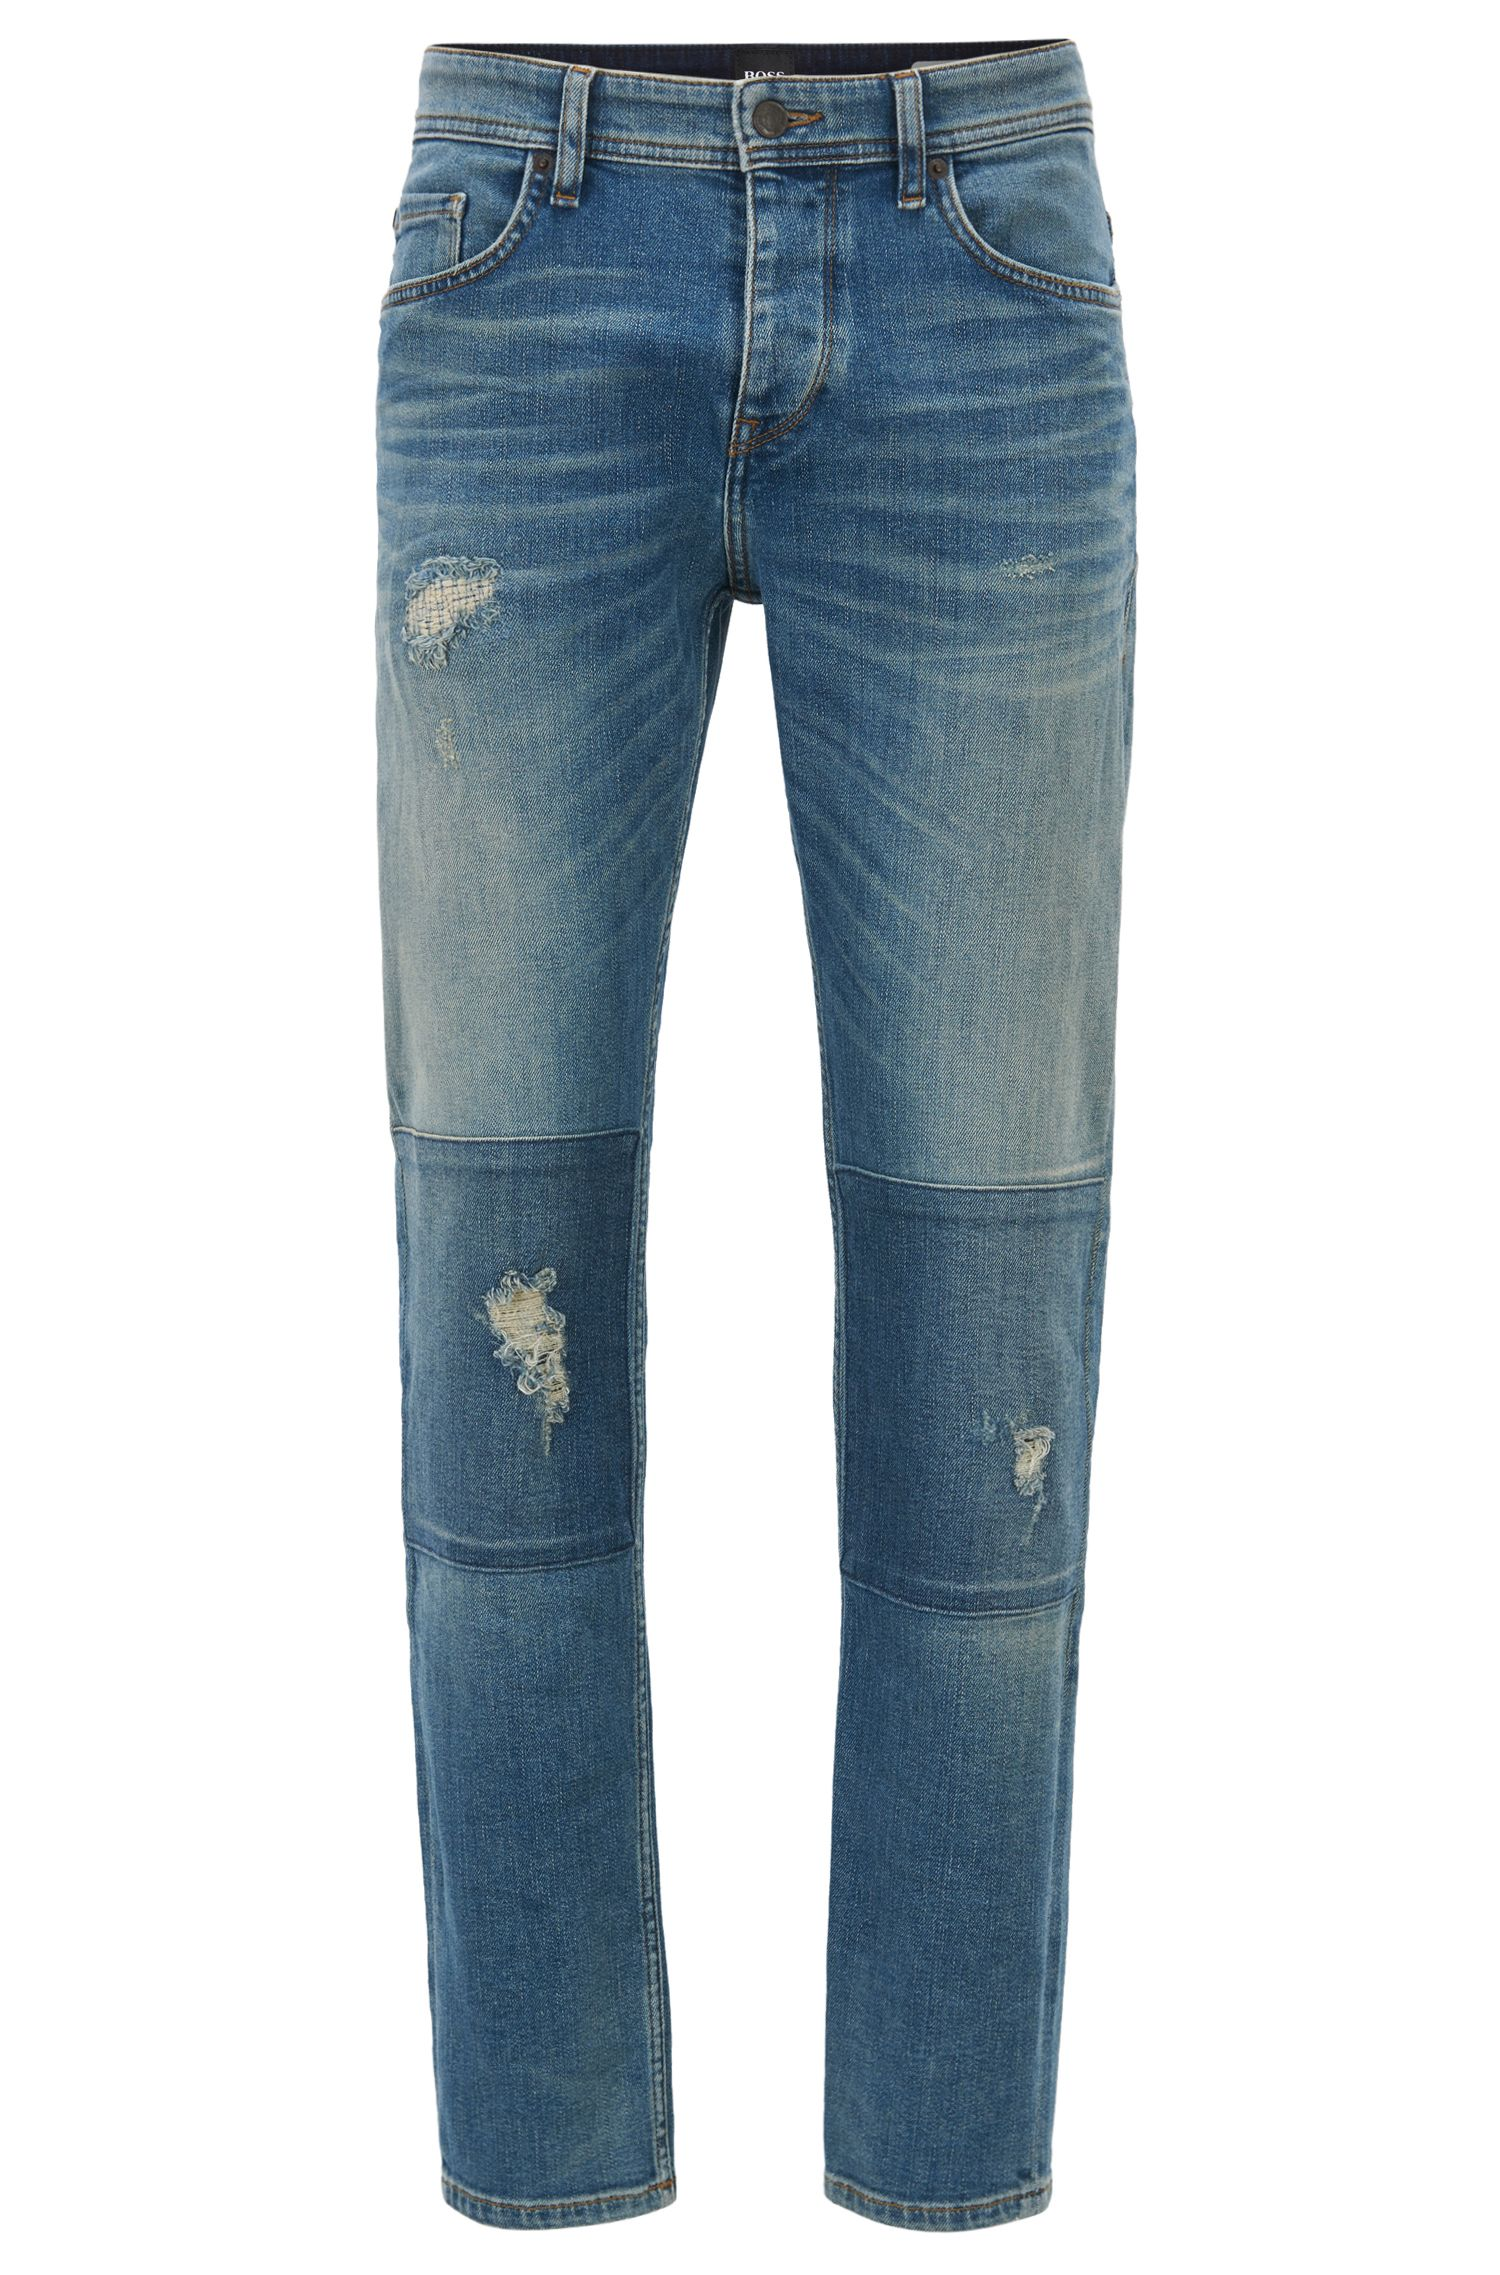 Jeans Tapered Fit en denim vintage confortable